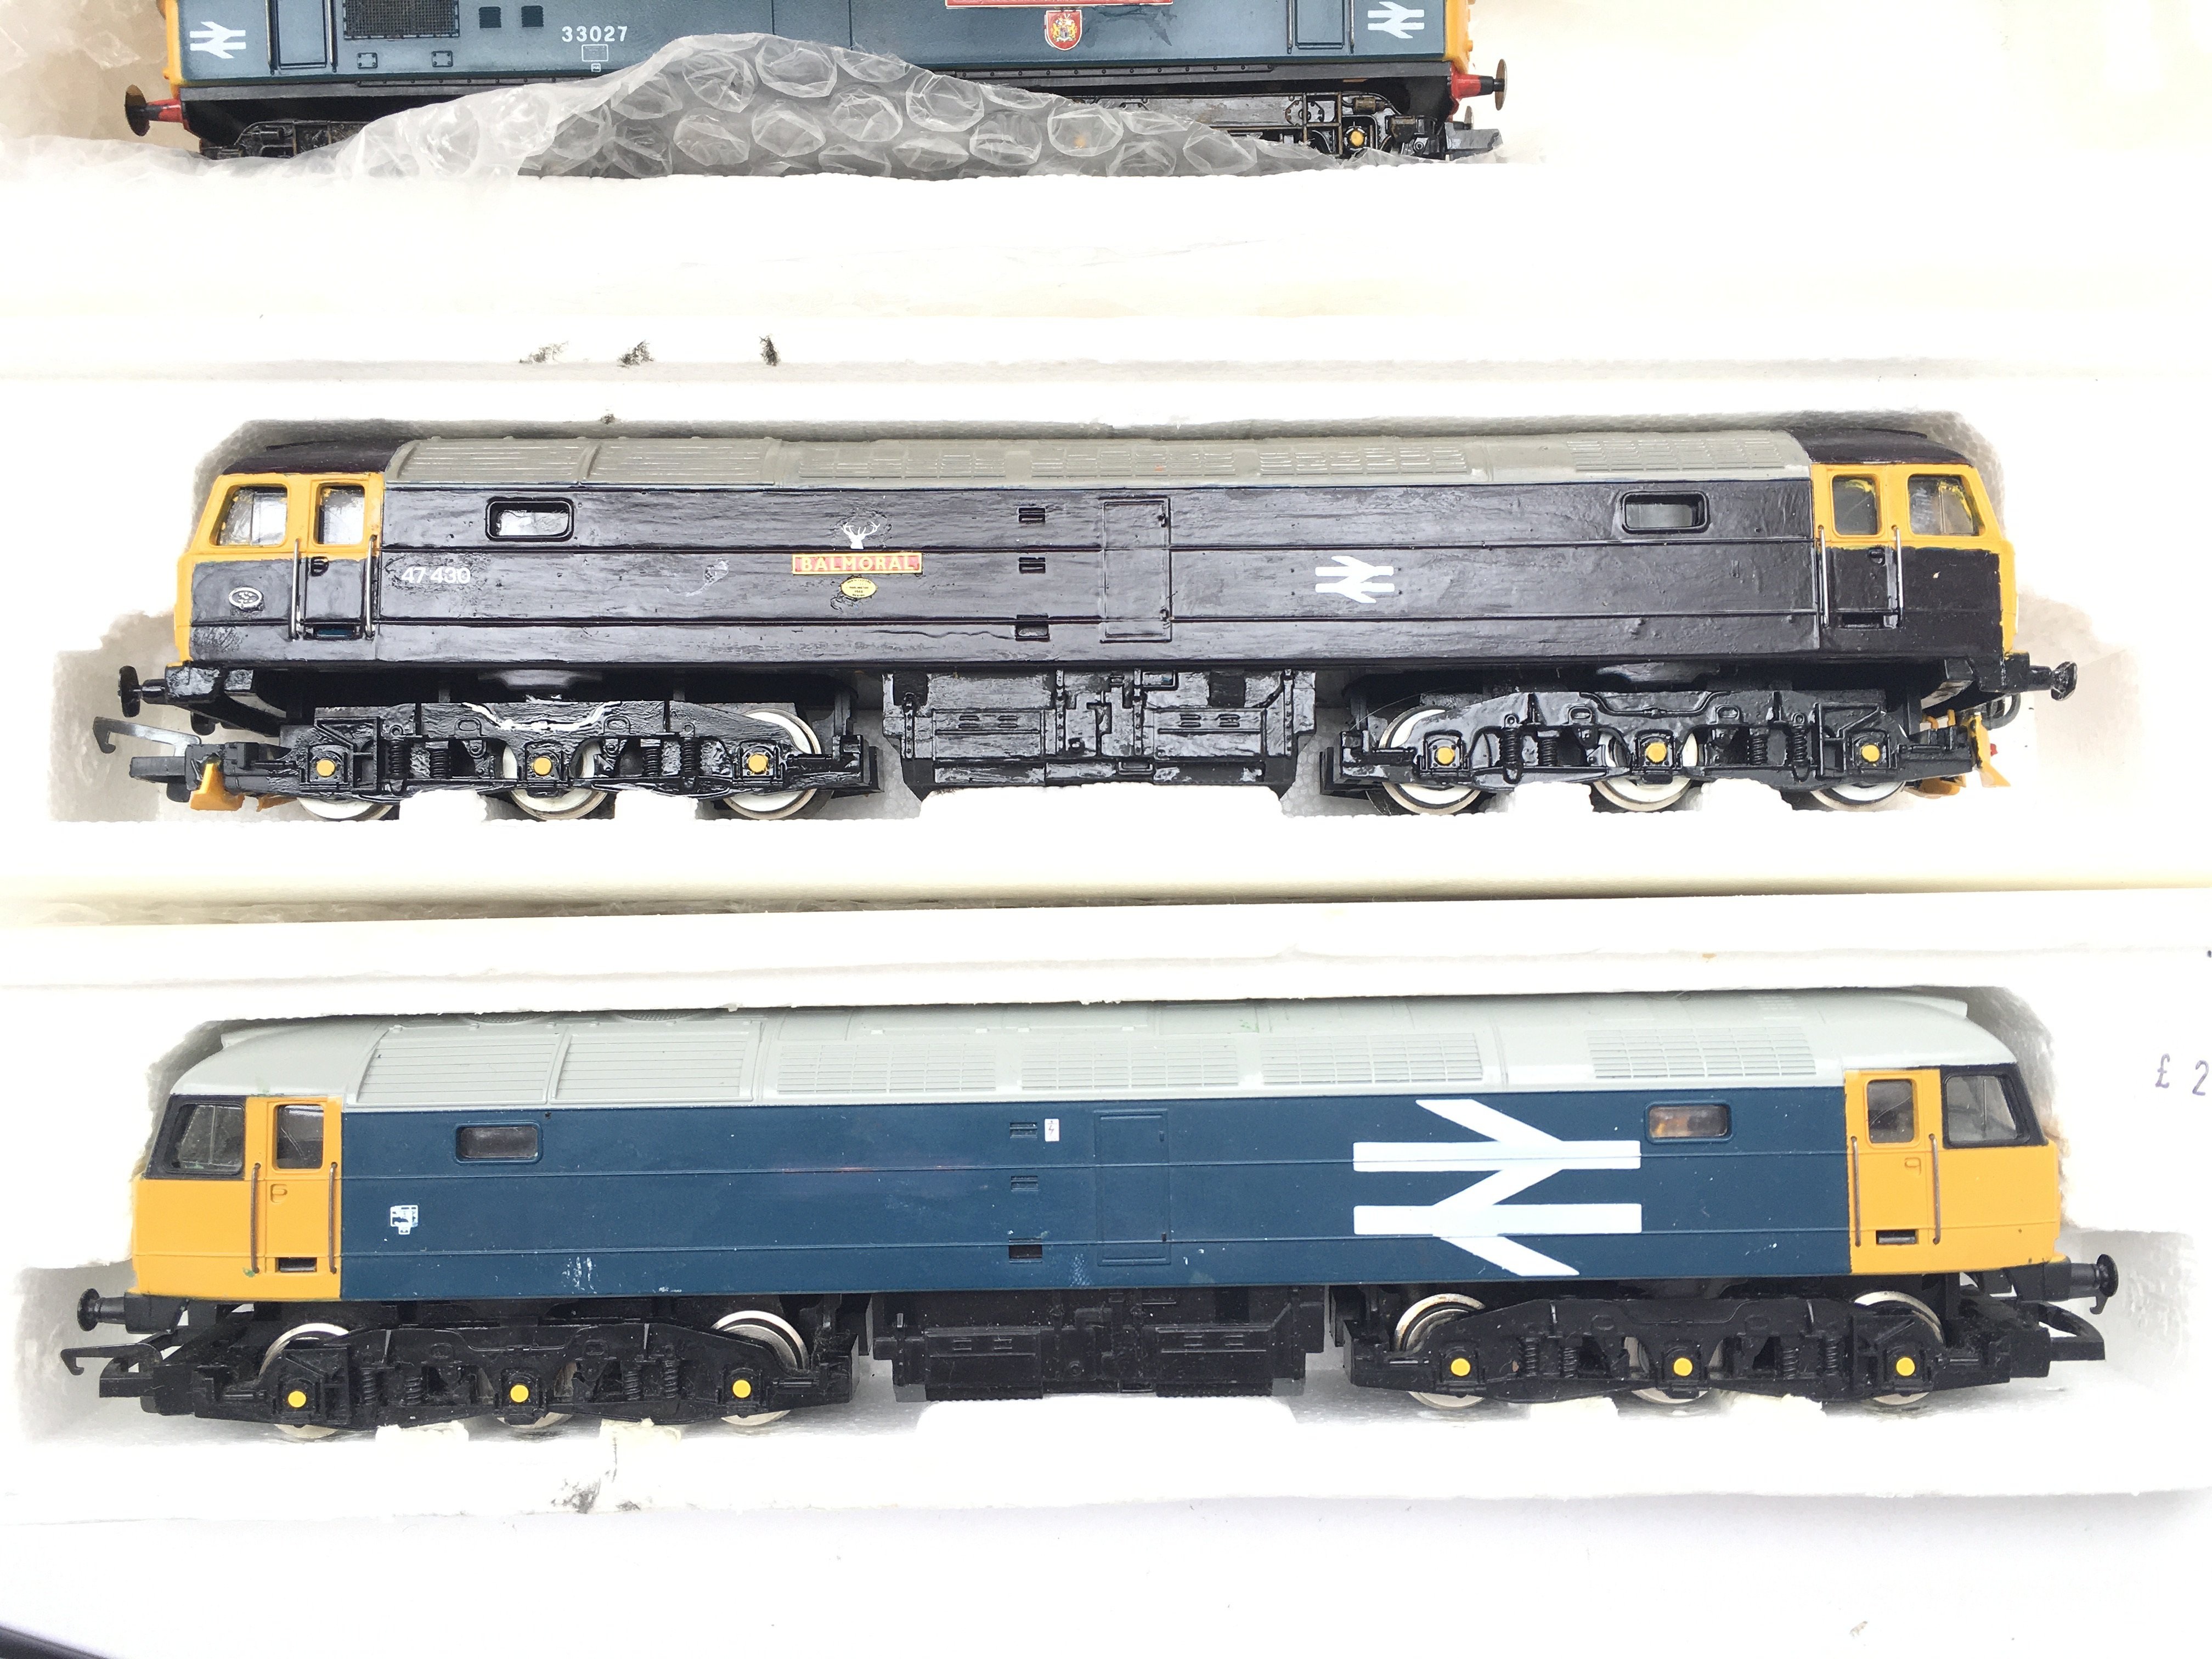 A Collection of 4 X 00 Gauge Locomotives 2 Have Be - Image 2 of 3